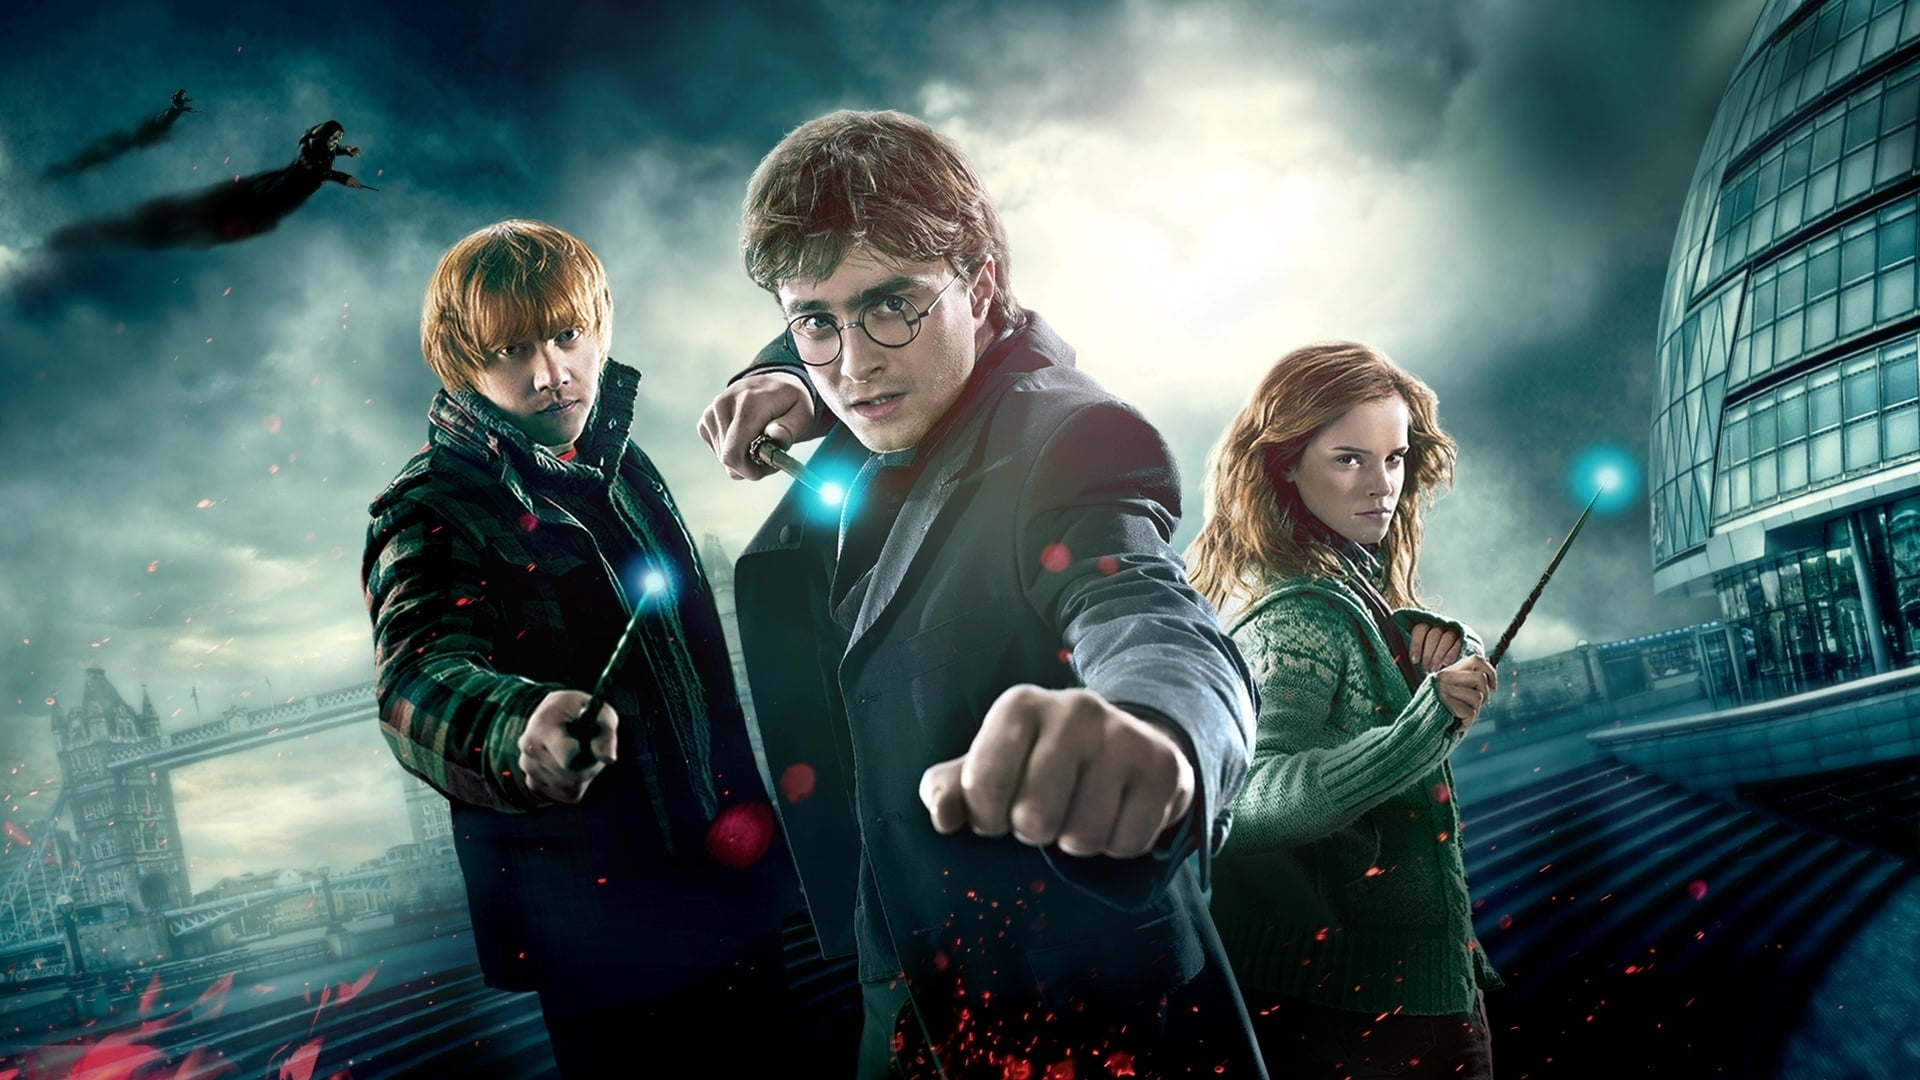 Watch Full Harry Potter and the Deathly Hallows: Part 1 2010 Movies Trailer